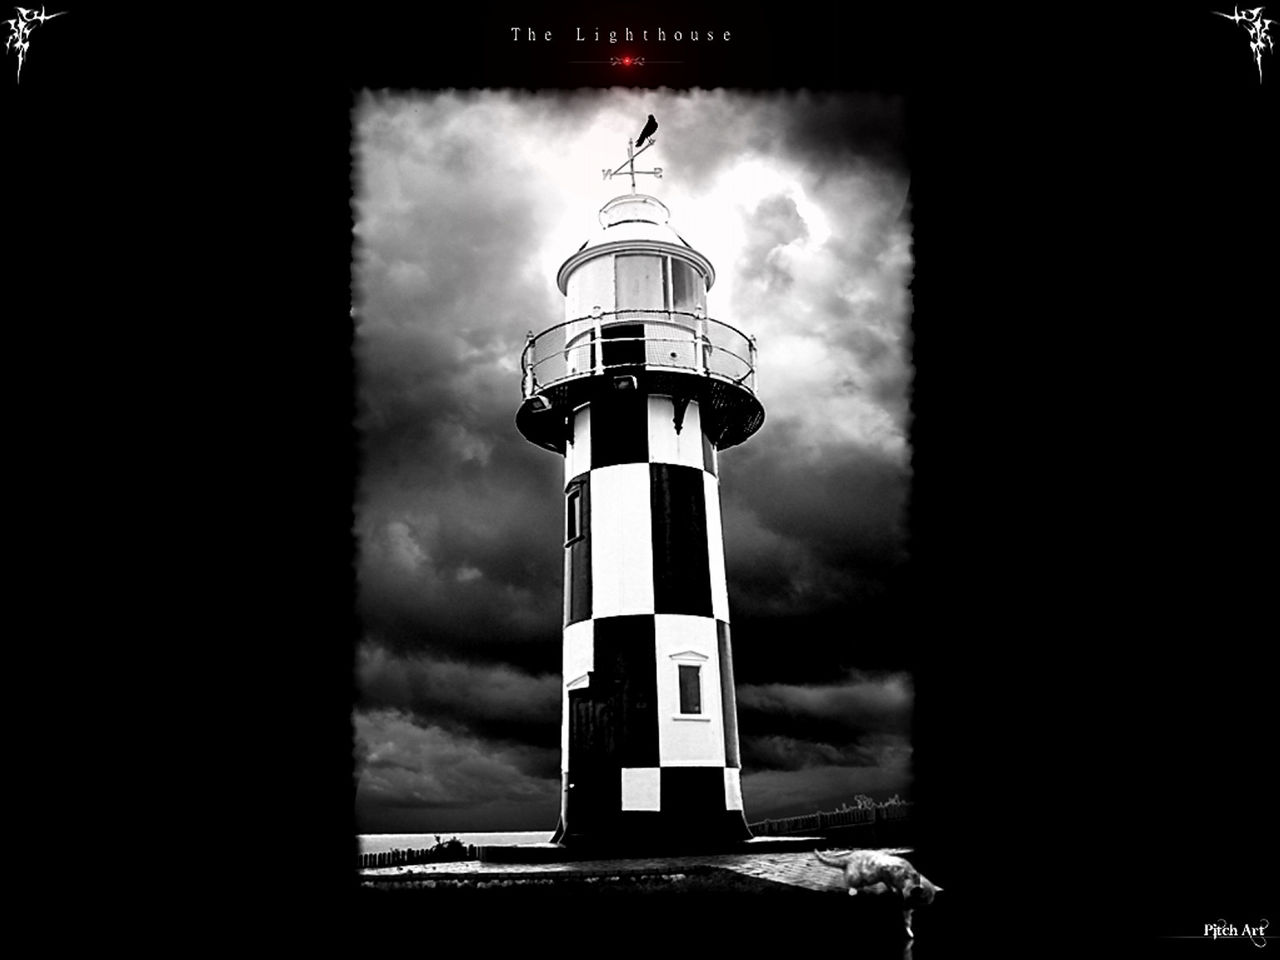 Studio Pitch Art The Lighthouse